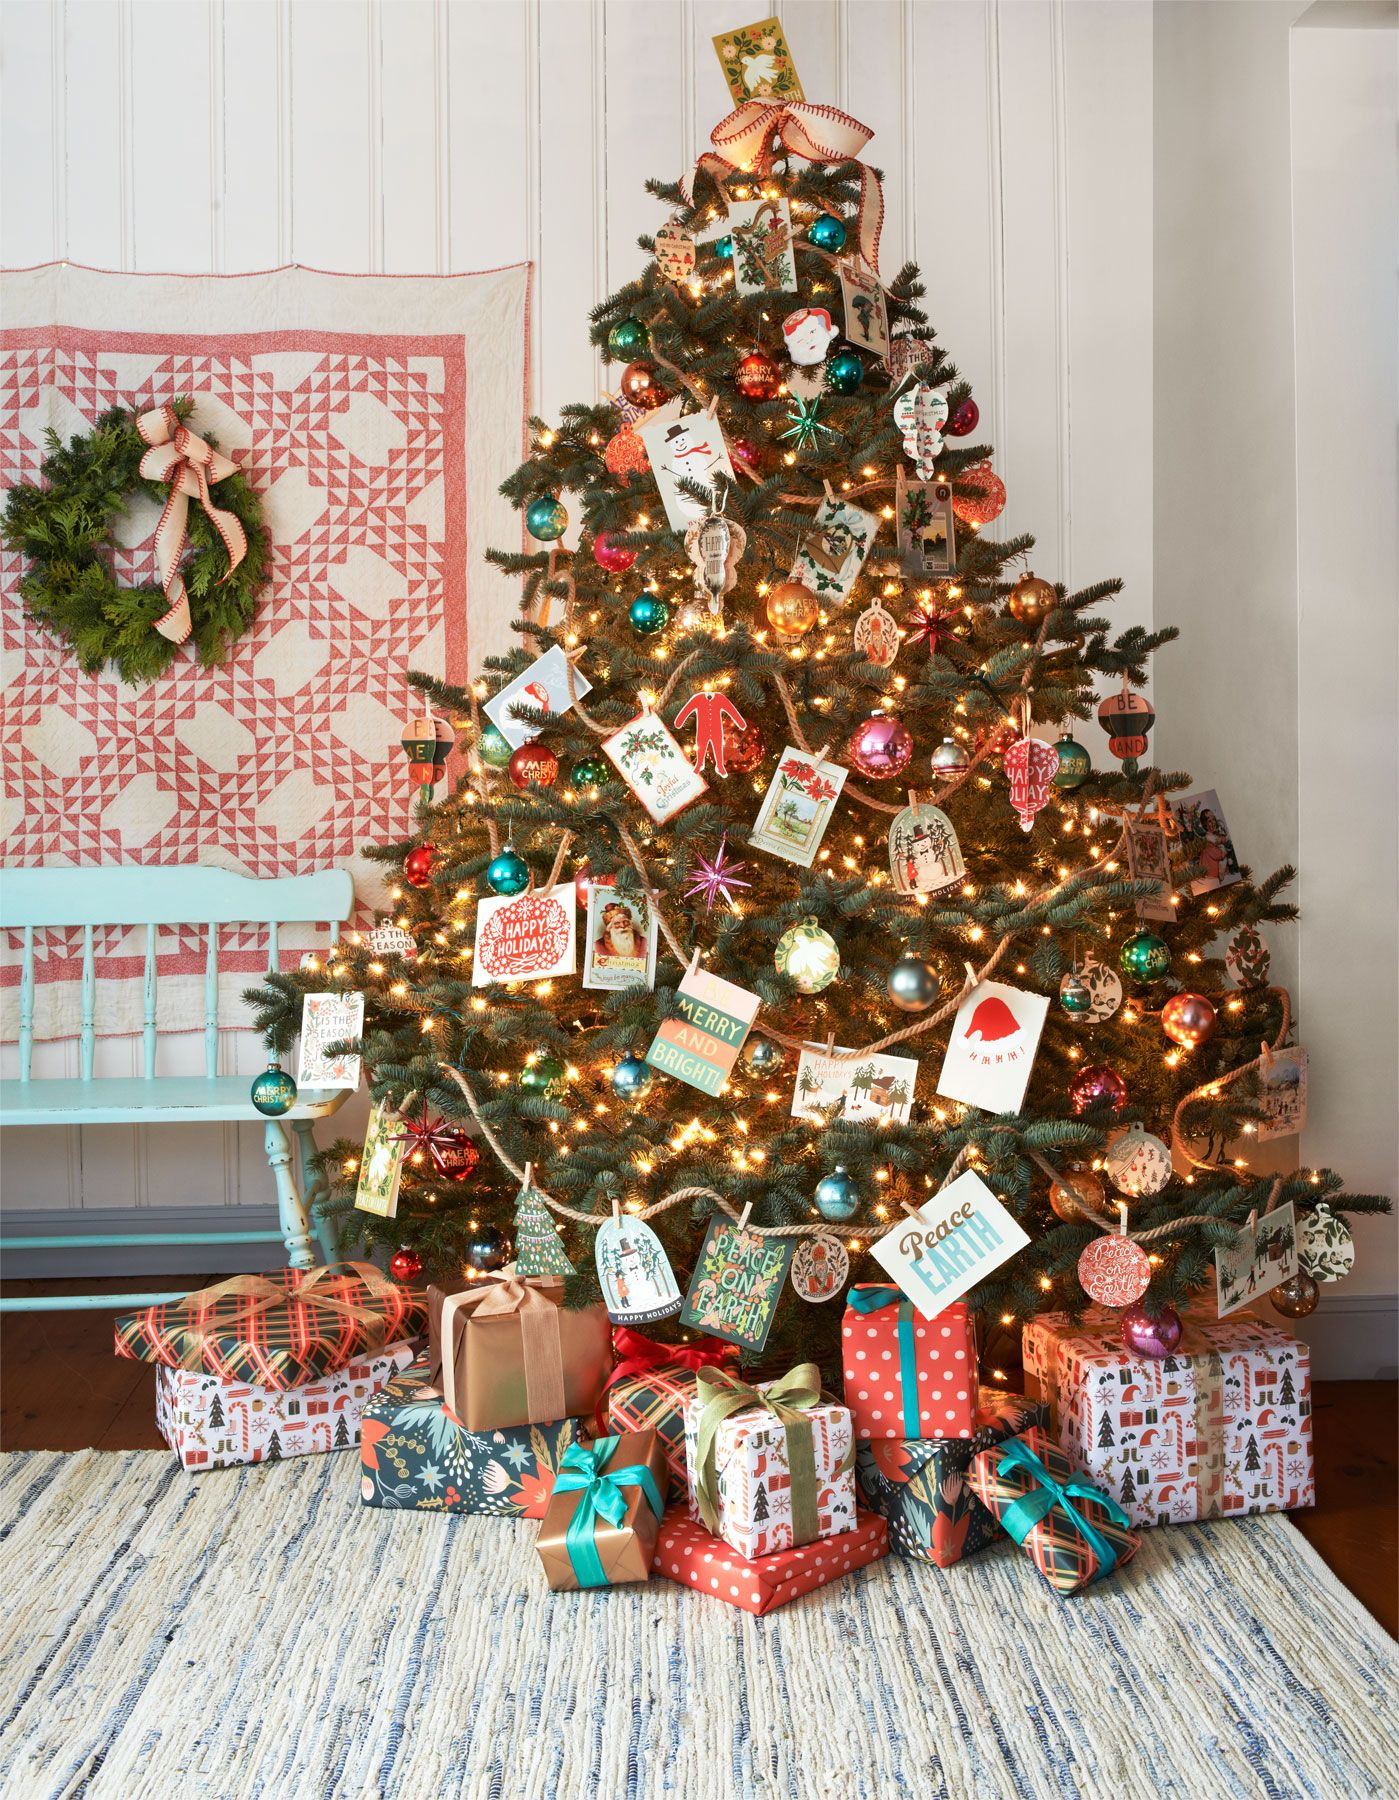 Upgrade Your Christmas Tree Game With These Decorating Ideas Cool Christmas Trees Amazing Christmas Trees Best Christmas Tree Decorations